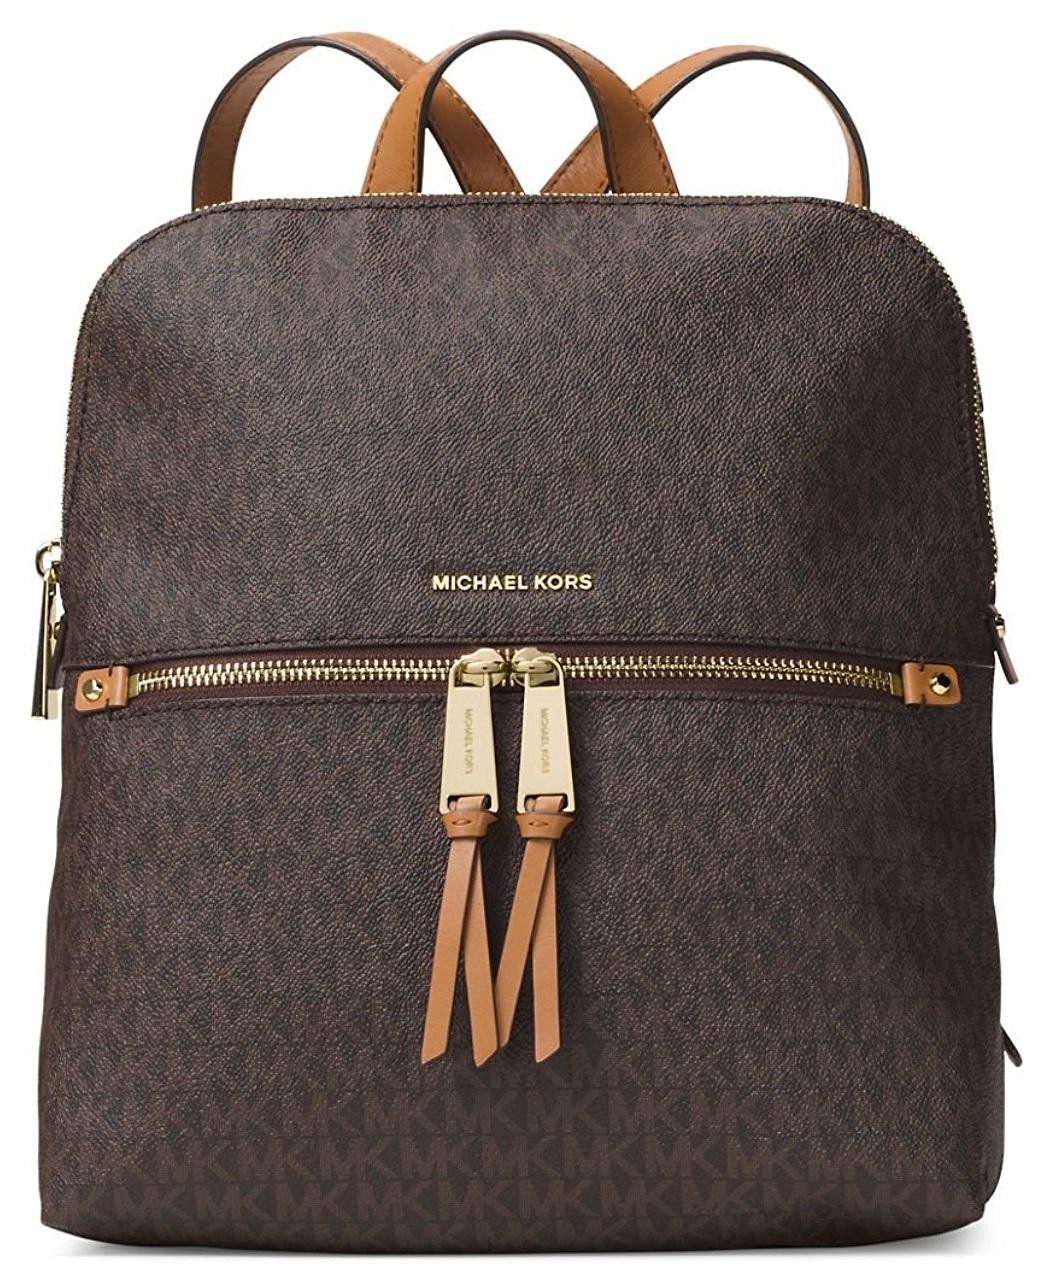 Women's Medium Rhea Signature Leather Backpack - Vanilla